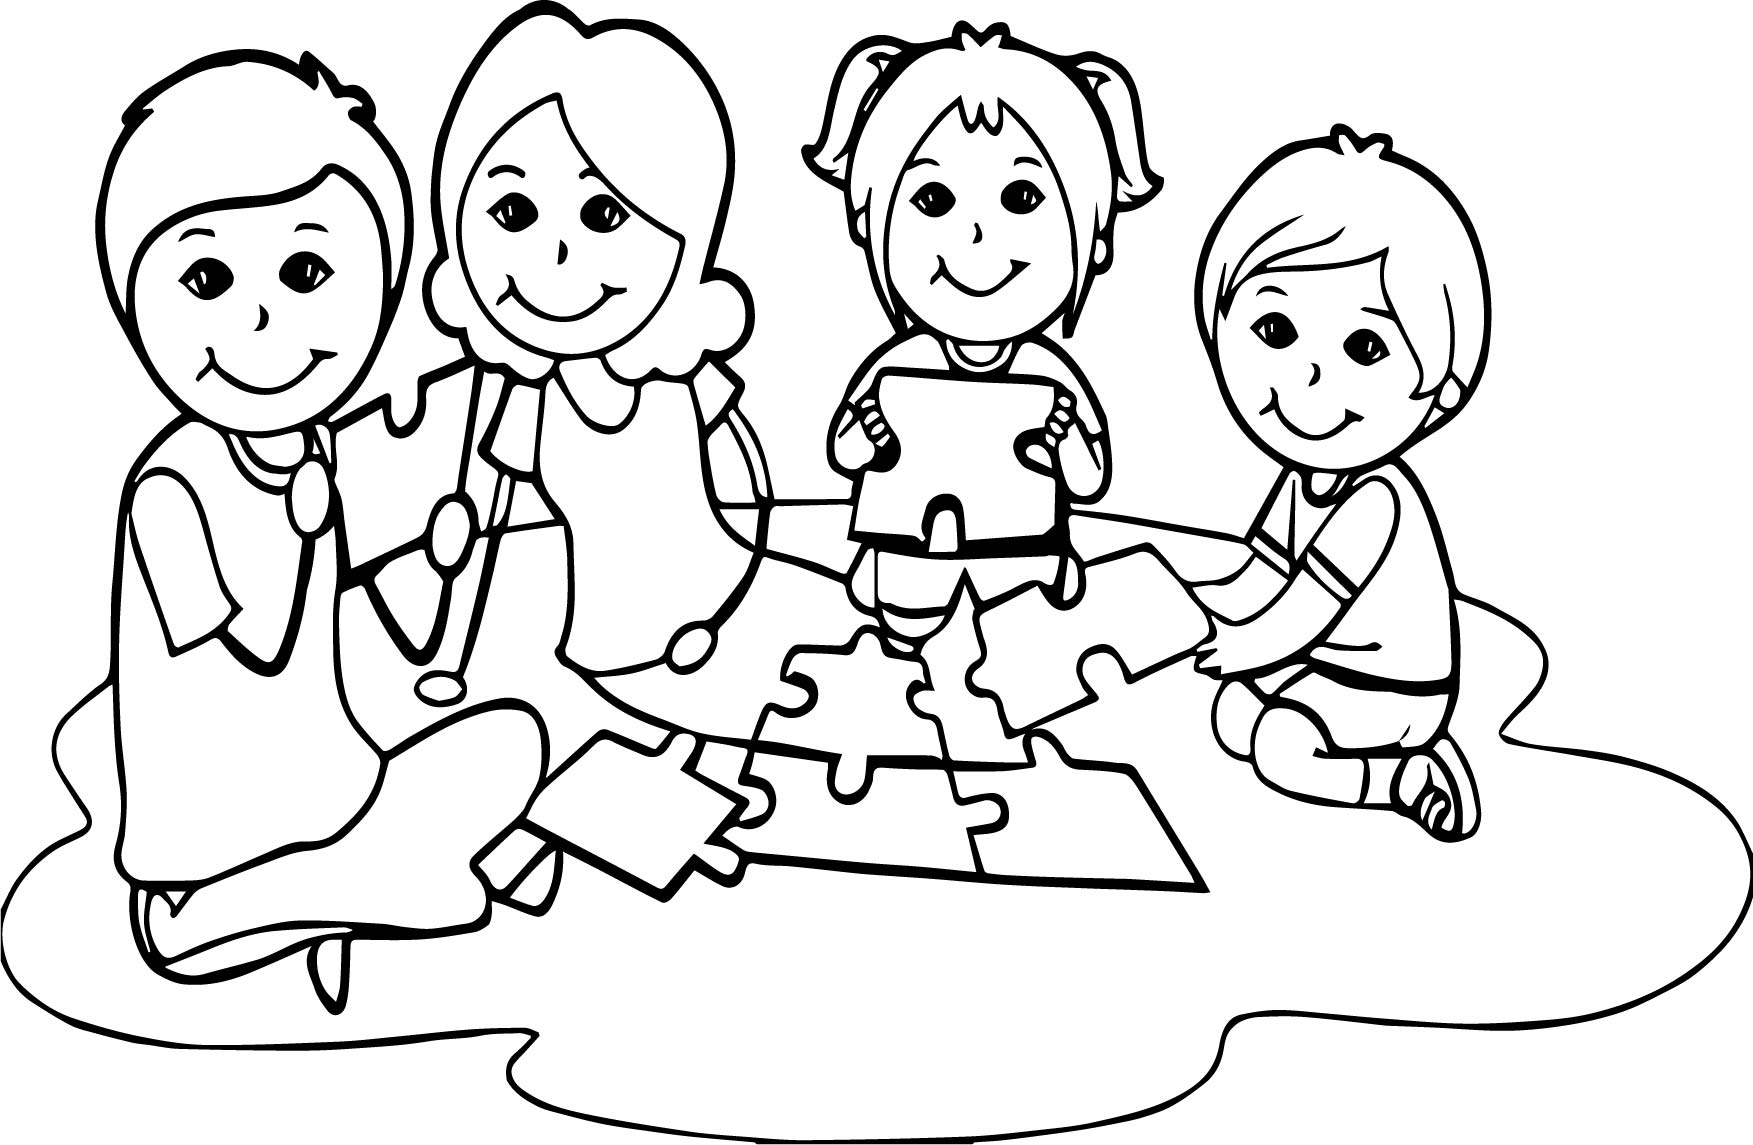 Board Children Puzzle Coloring Page